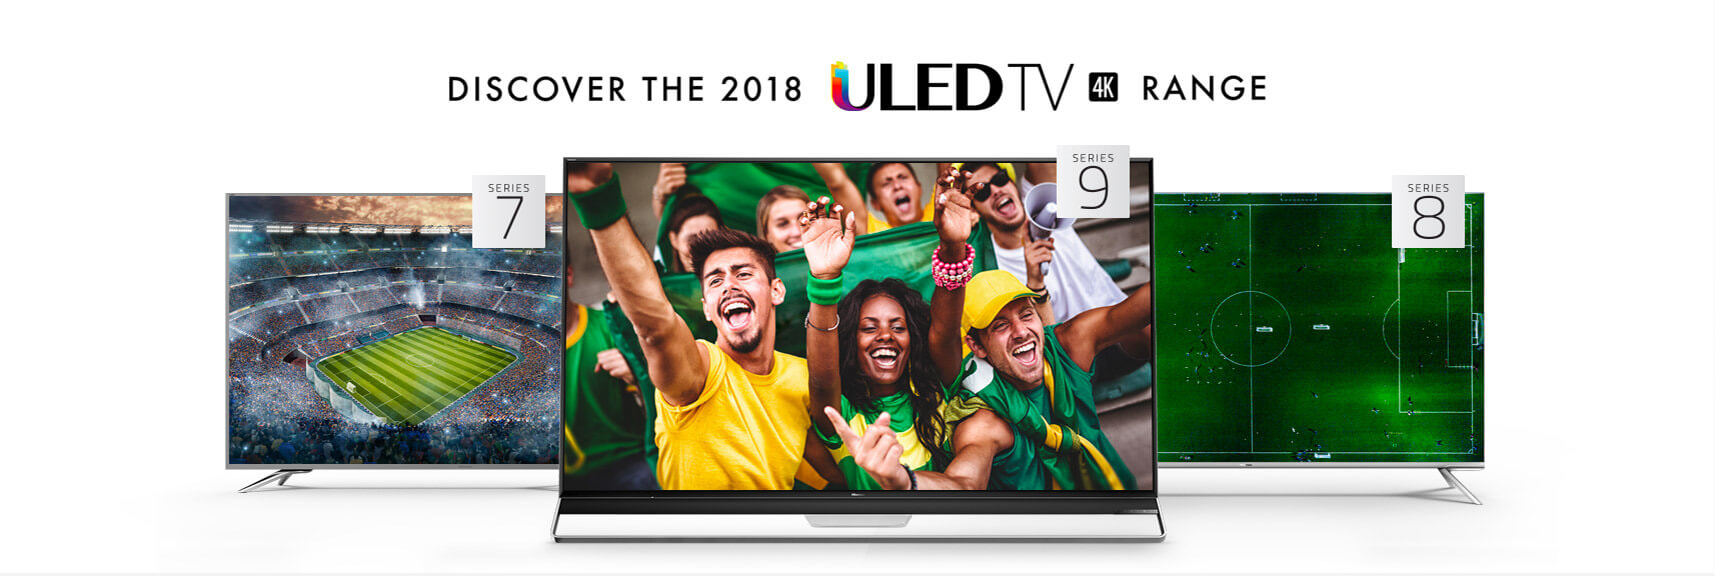 Shop the Hisense ULED 4K Smart TV range online and in store at The Good Guys.